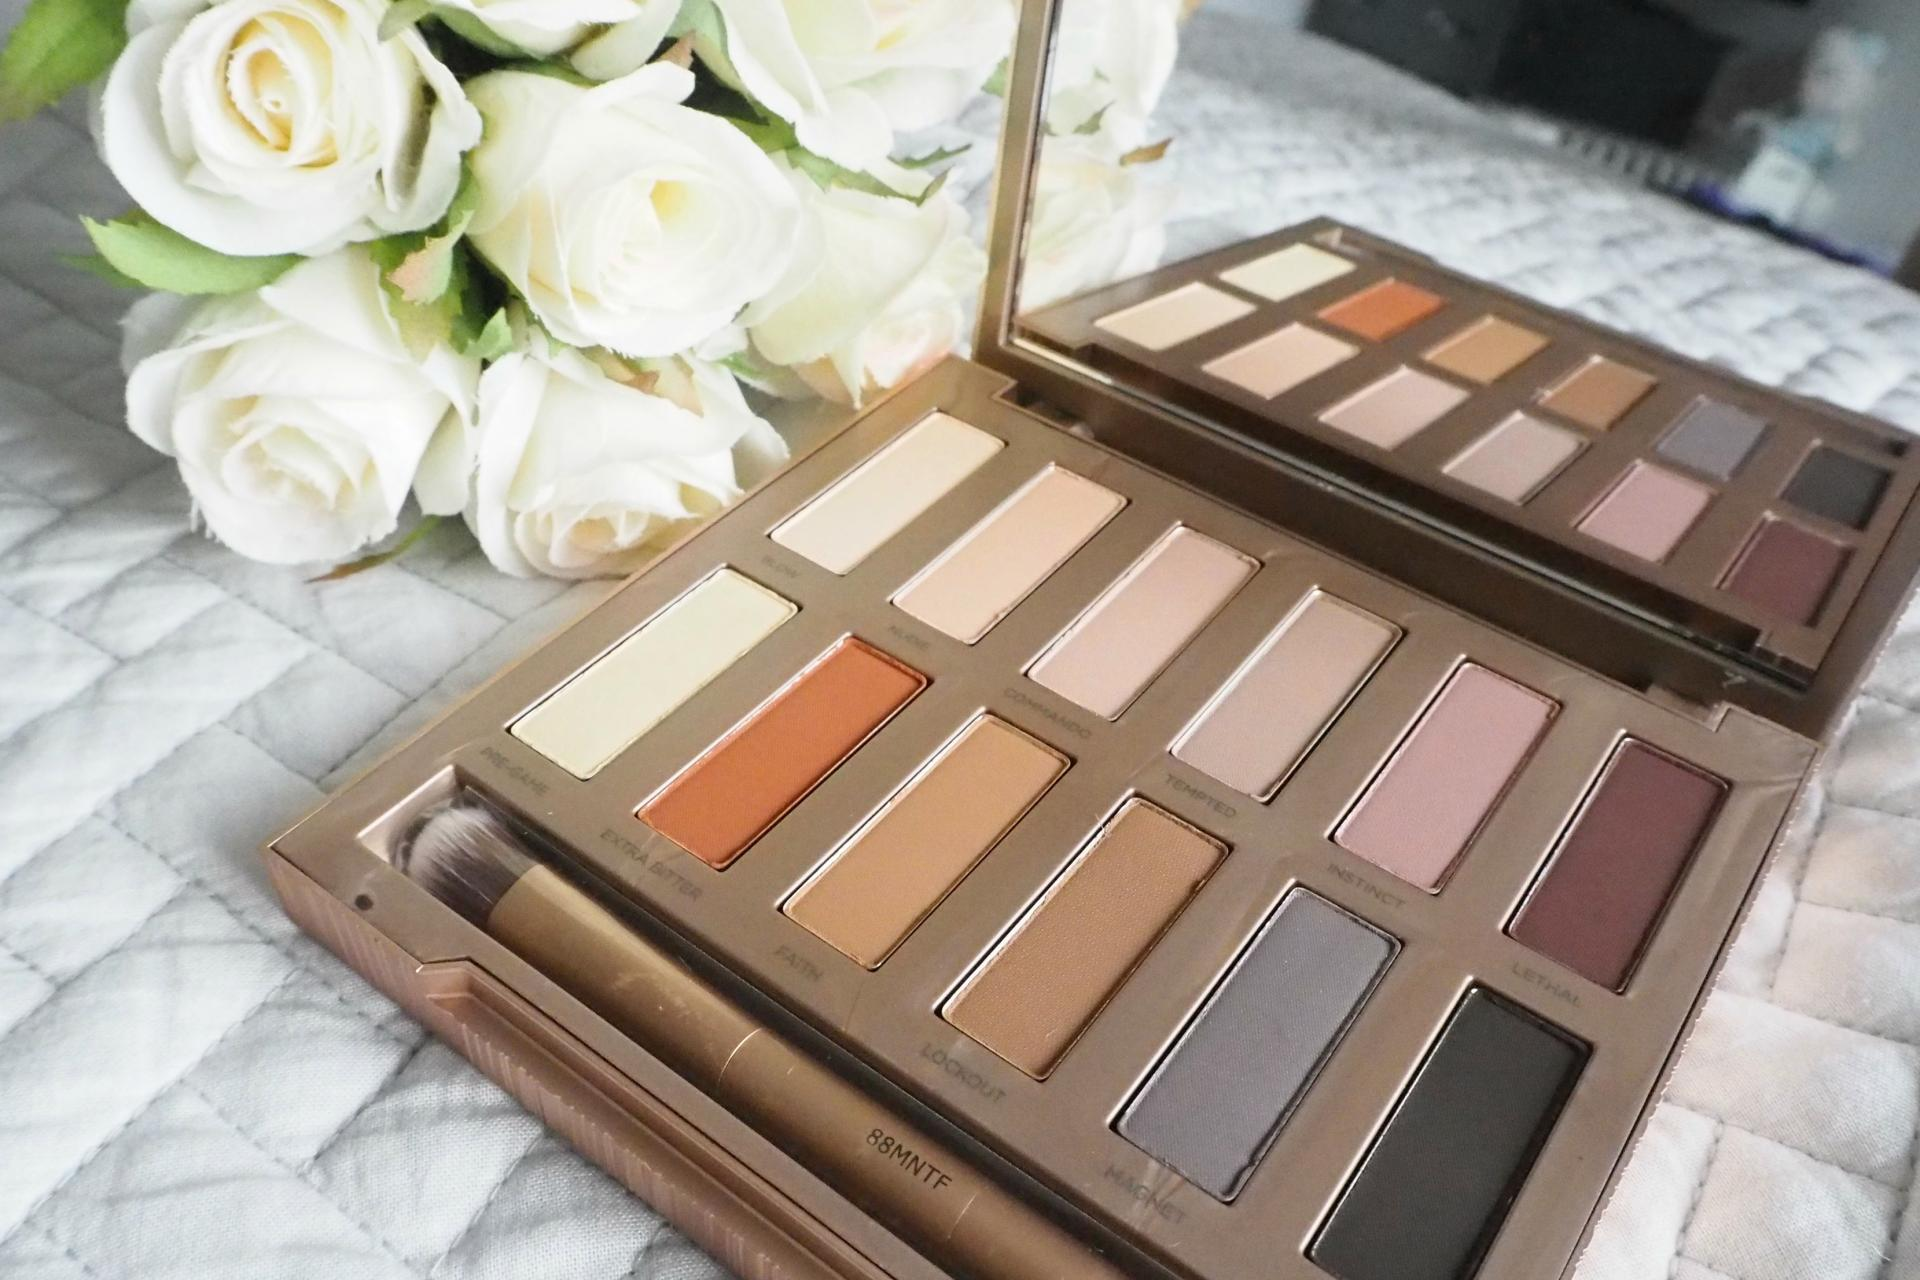 How to use urban decay's ultimate basics naked palette